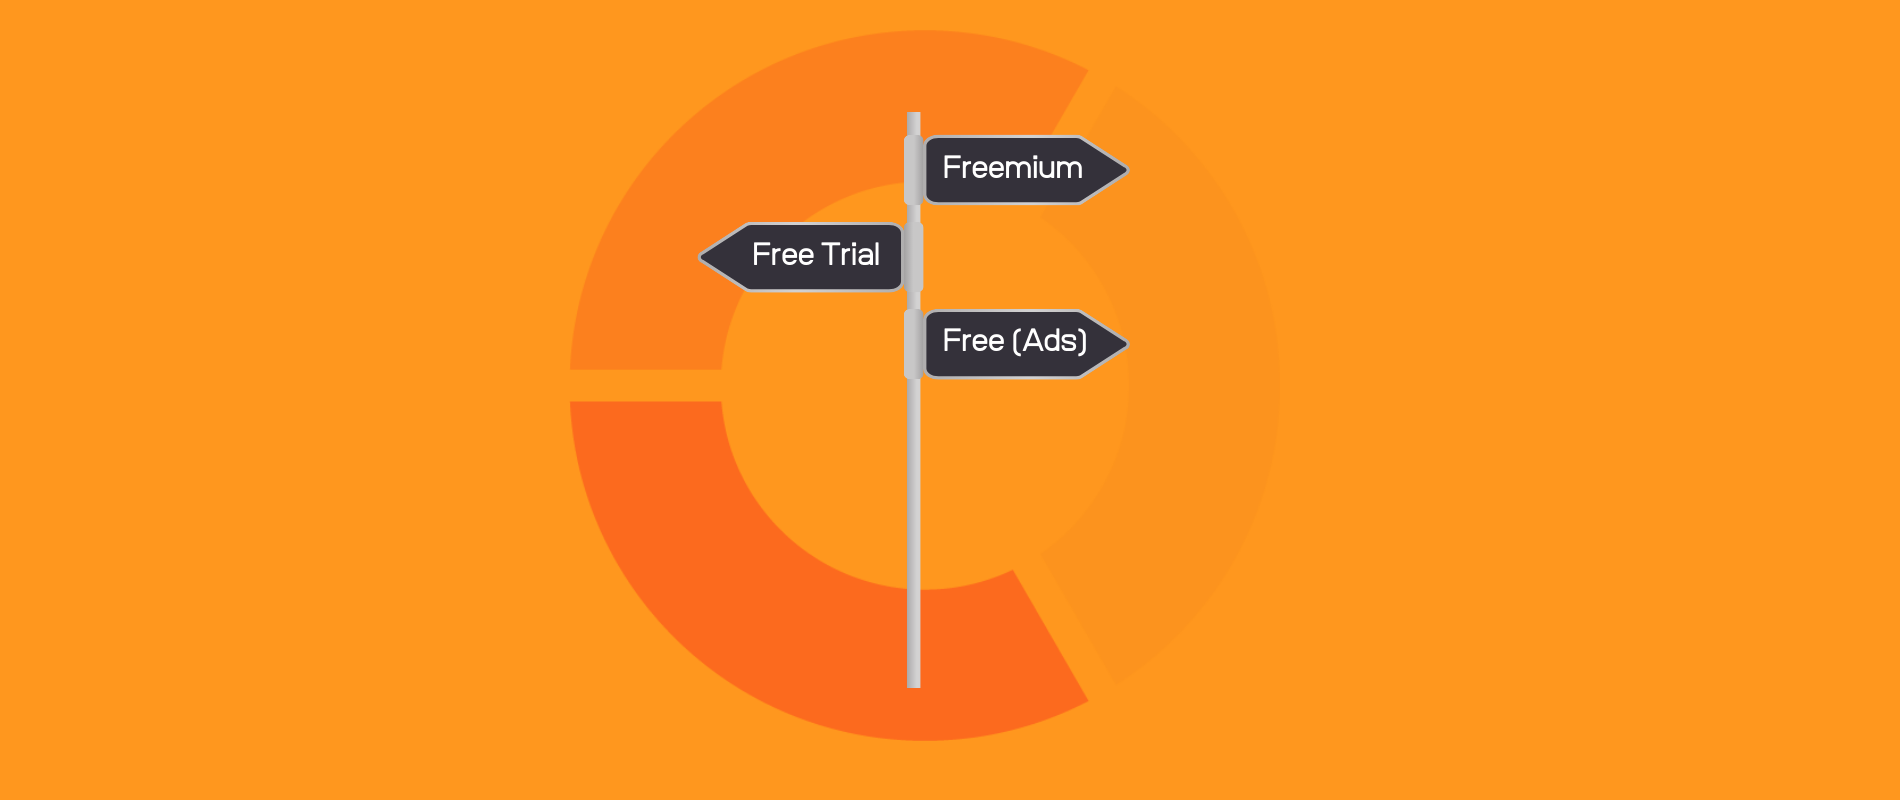 The Simple Guide to SaaS Pricing Models